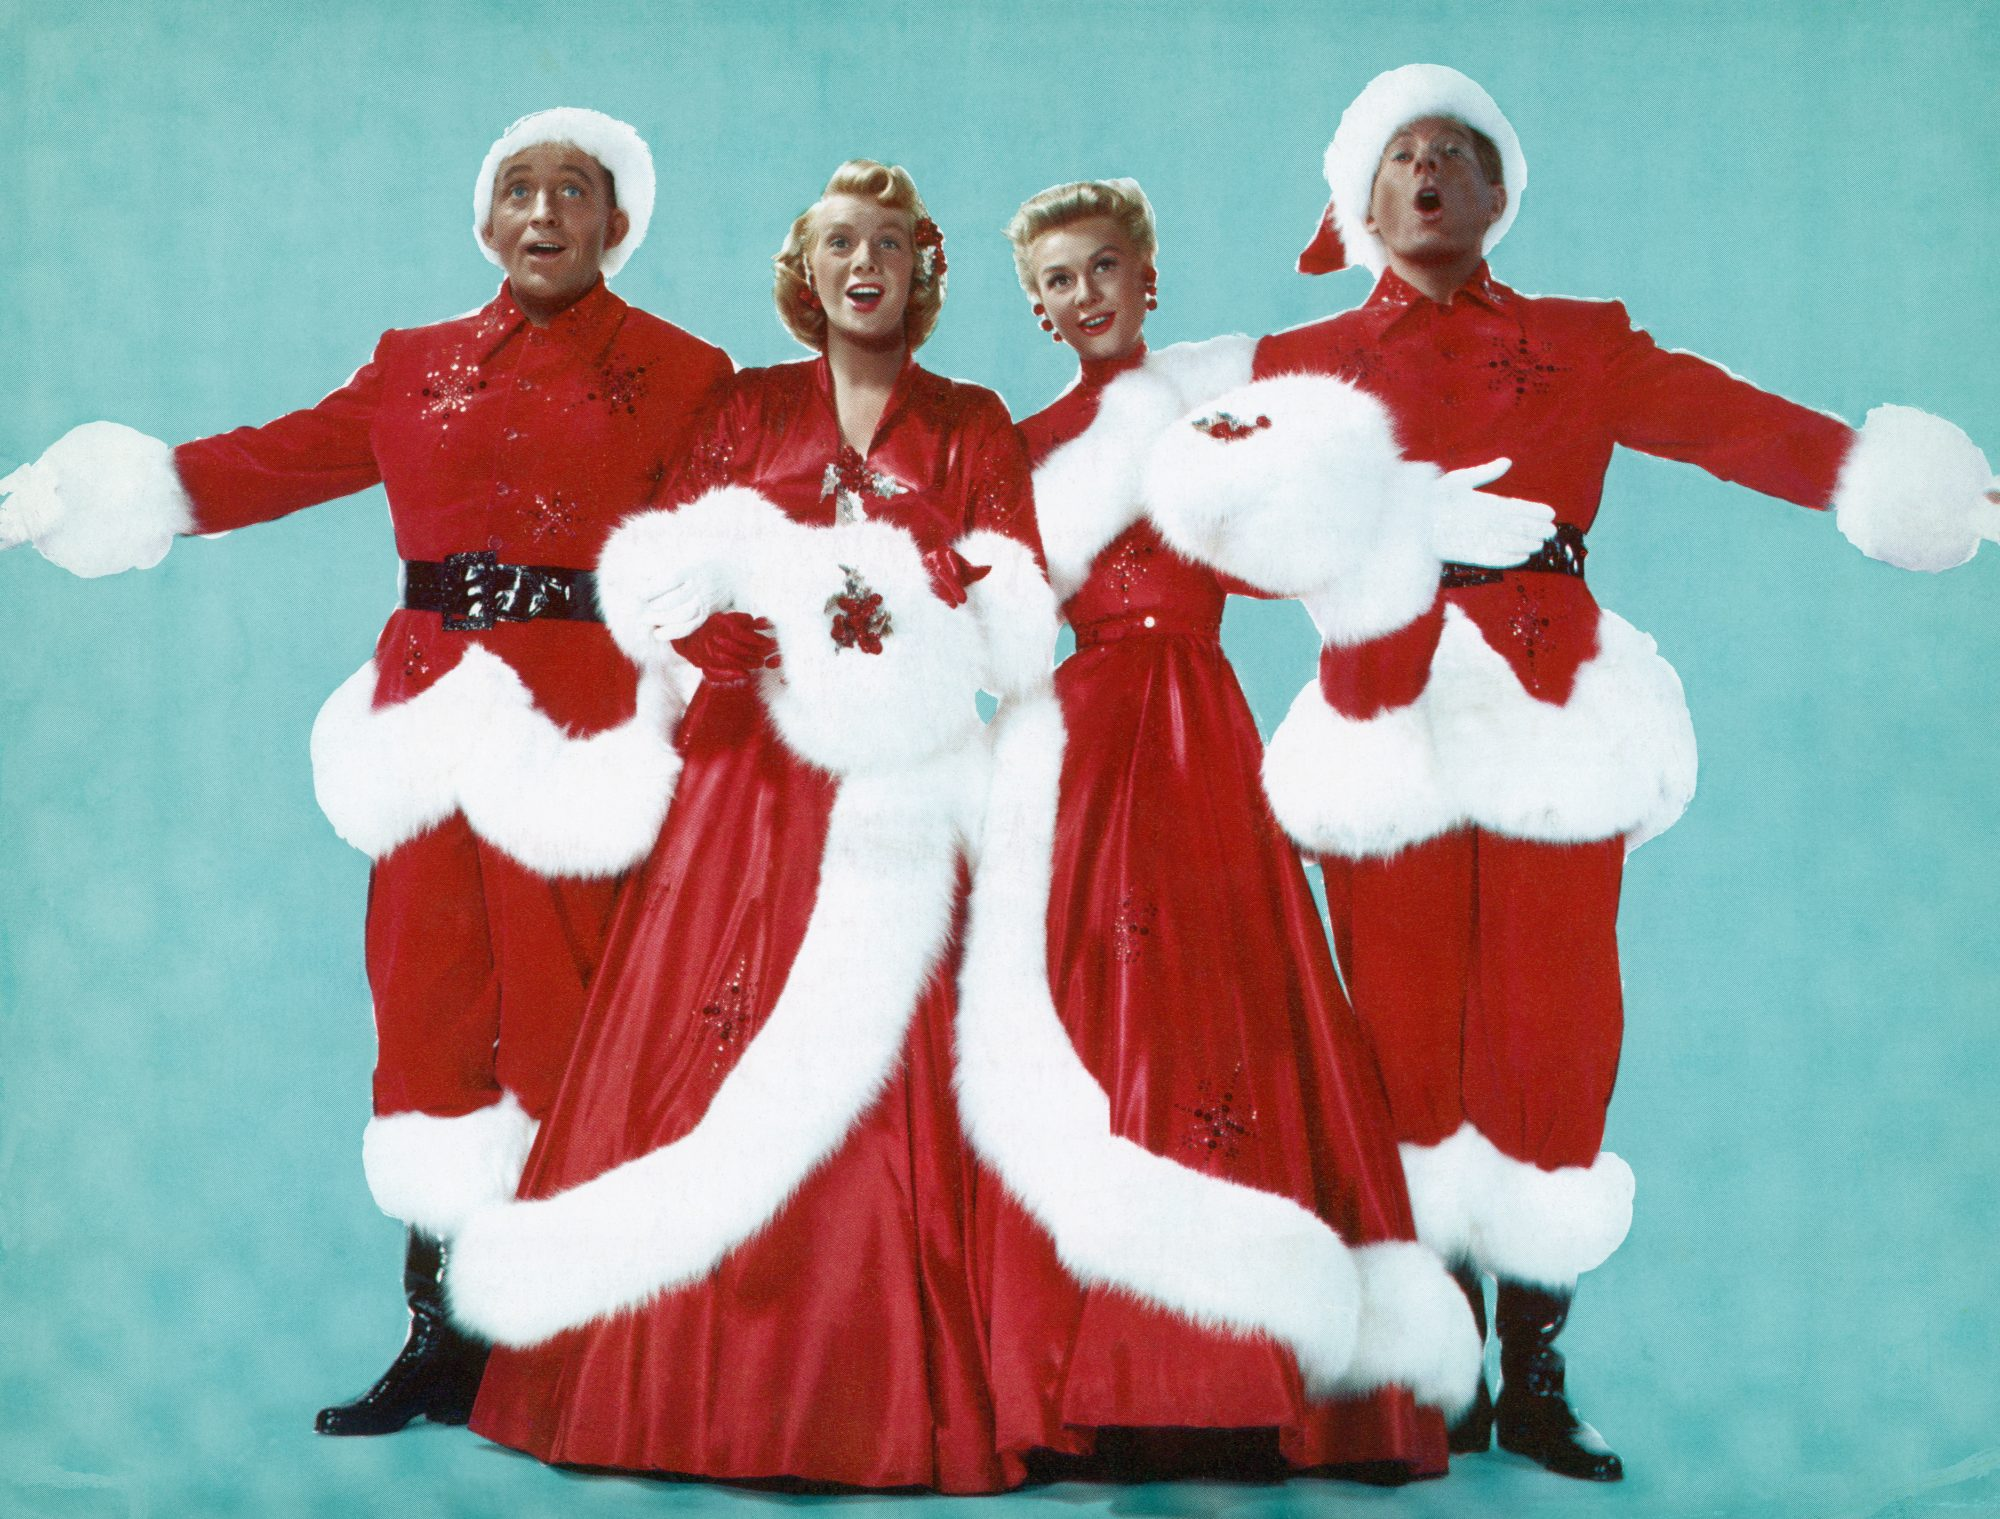 WATCH: Things You Probably Didn't Know About 'White Christmas' - Southern Living